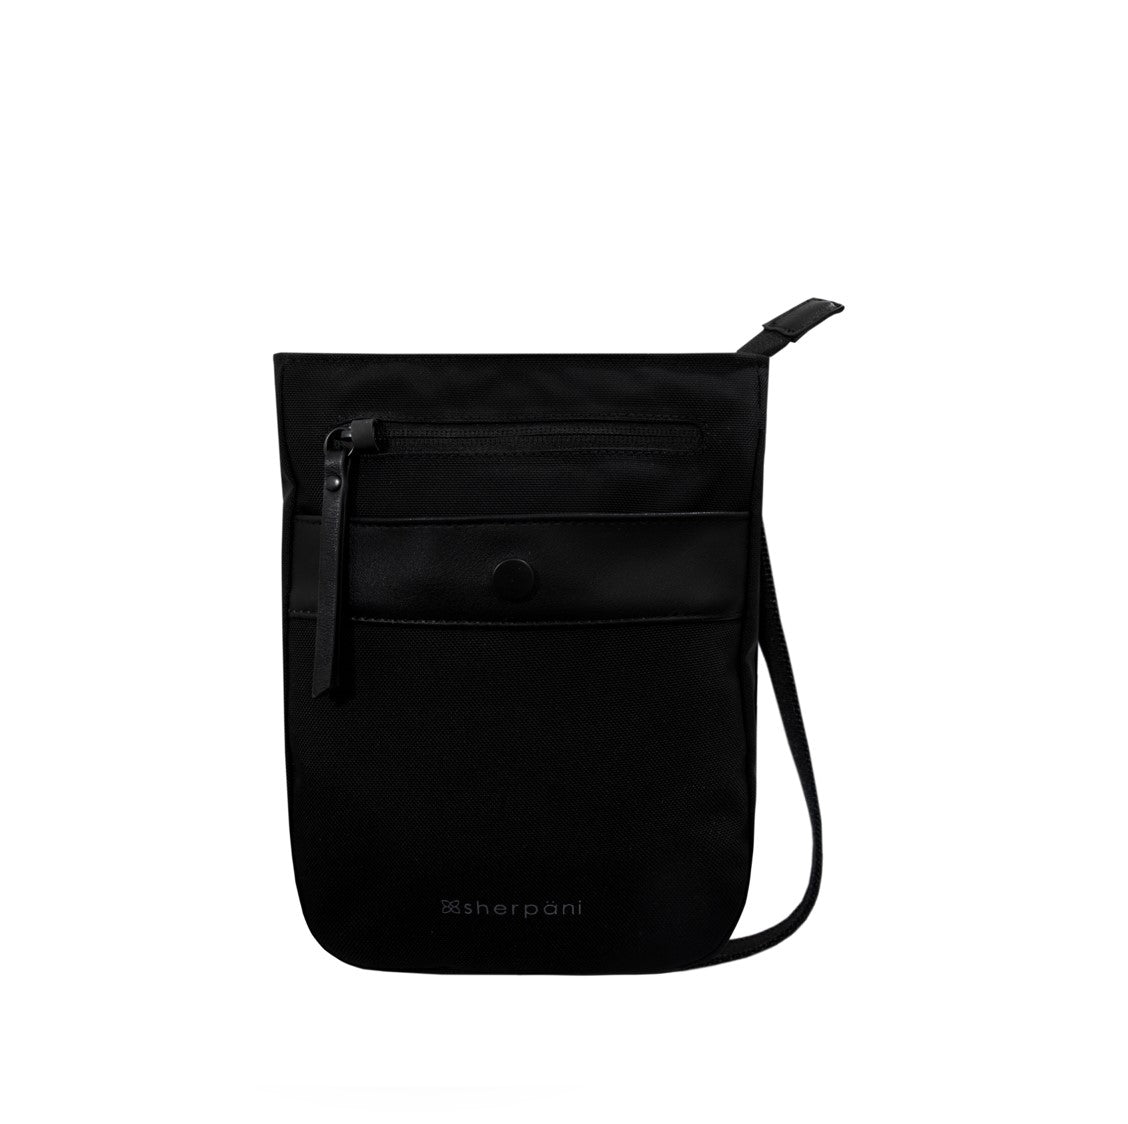 Black Anti-theft Crossbody (front view) with anti-theft features